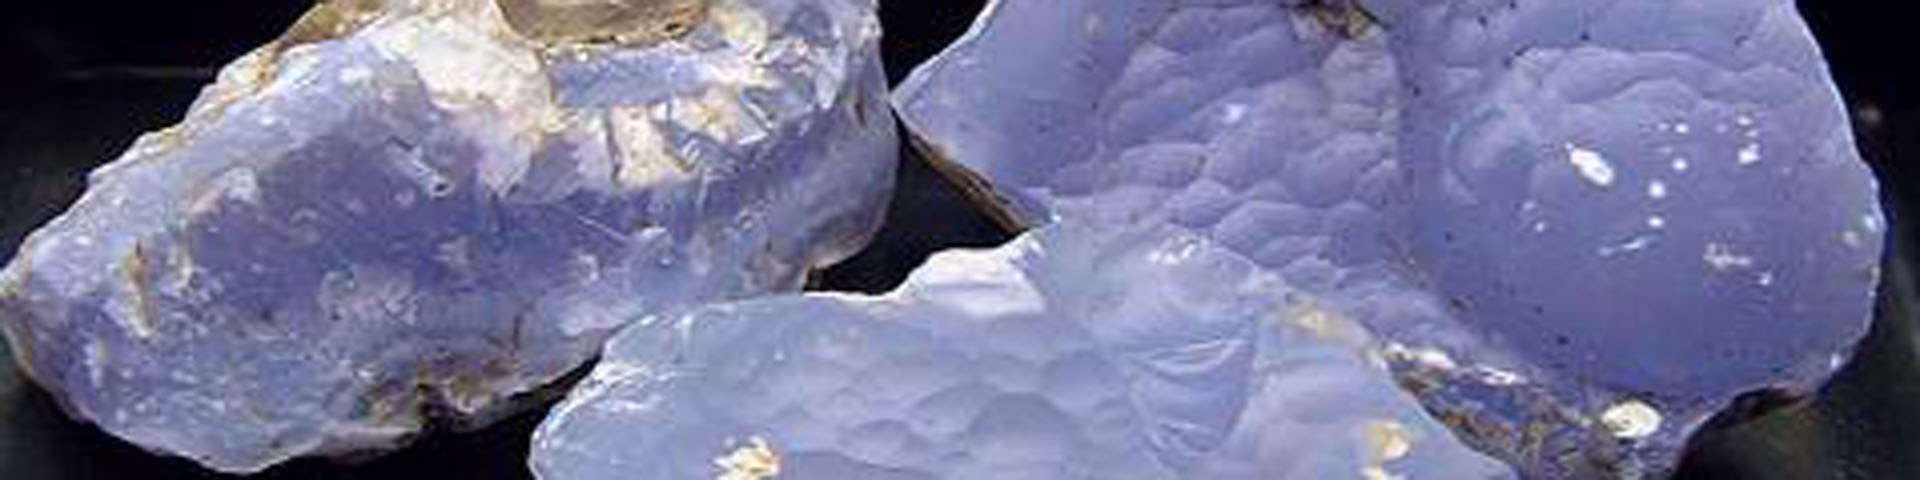 Several samples of blue-white stone